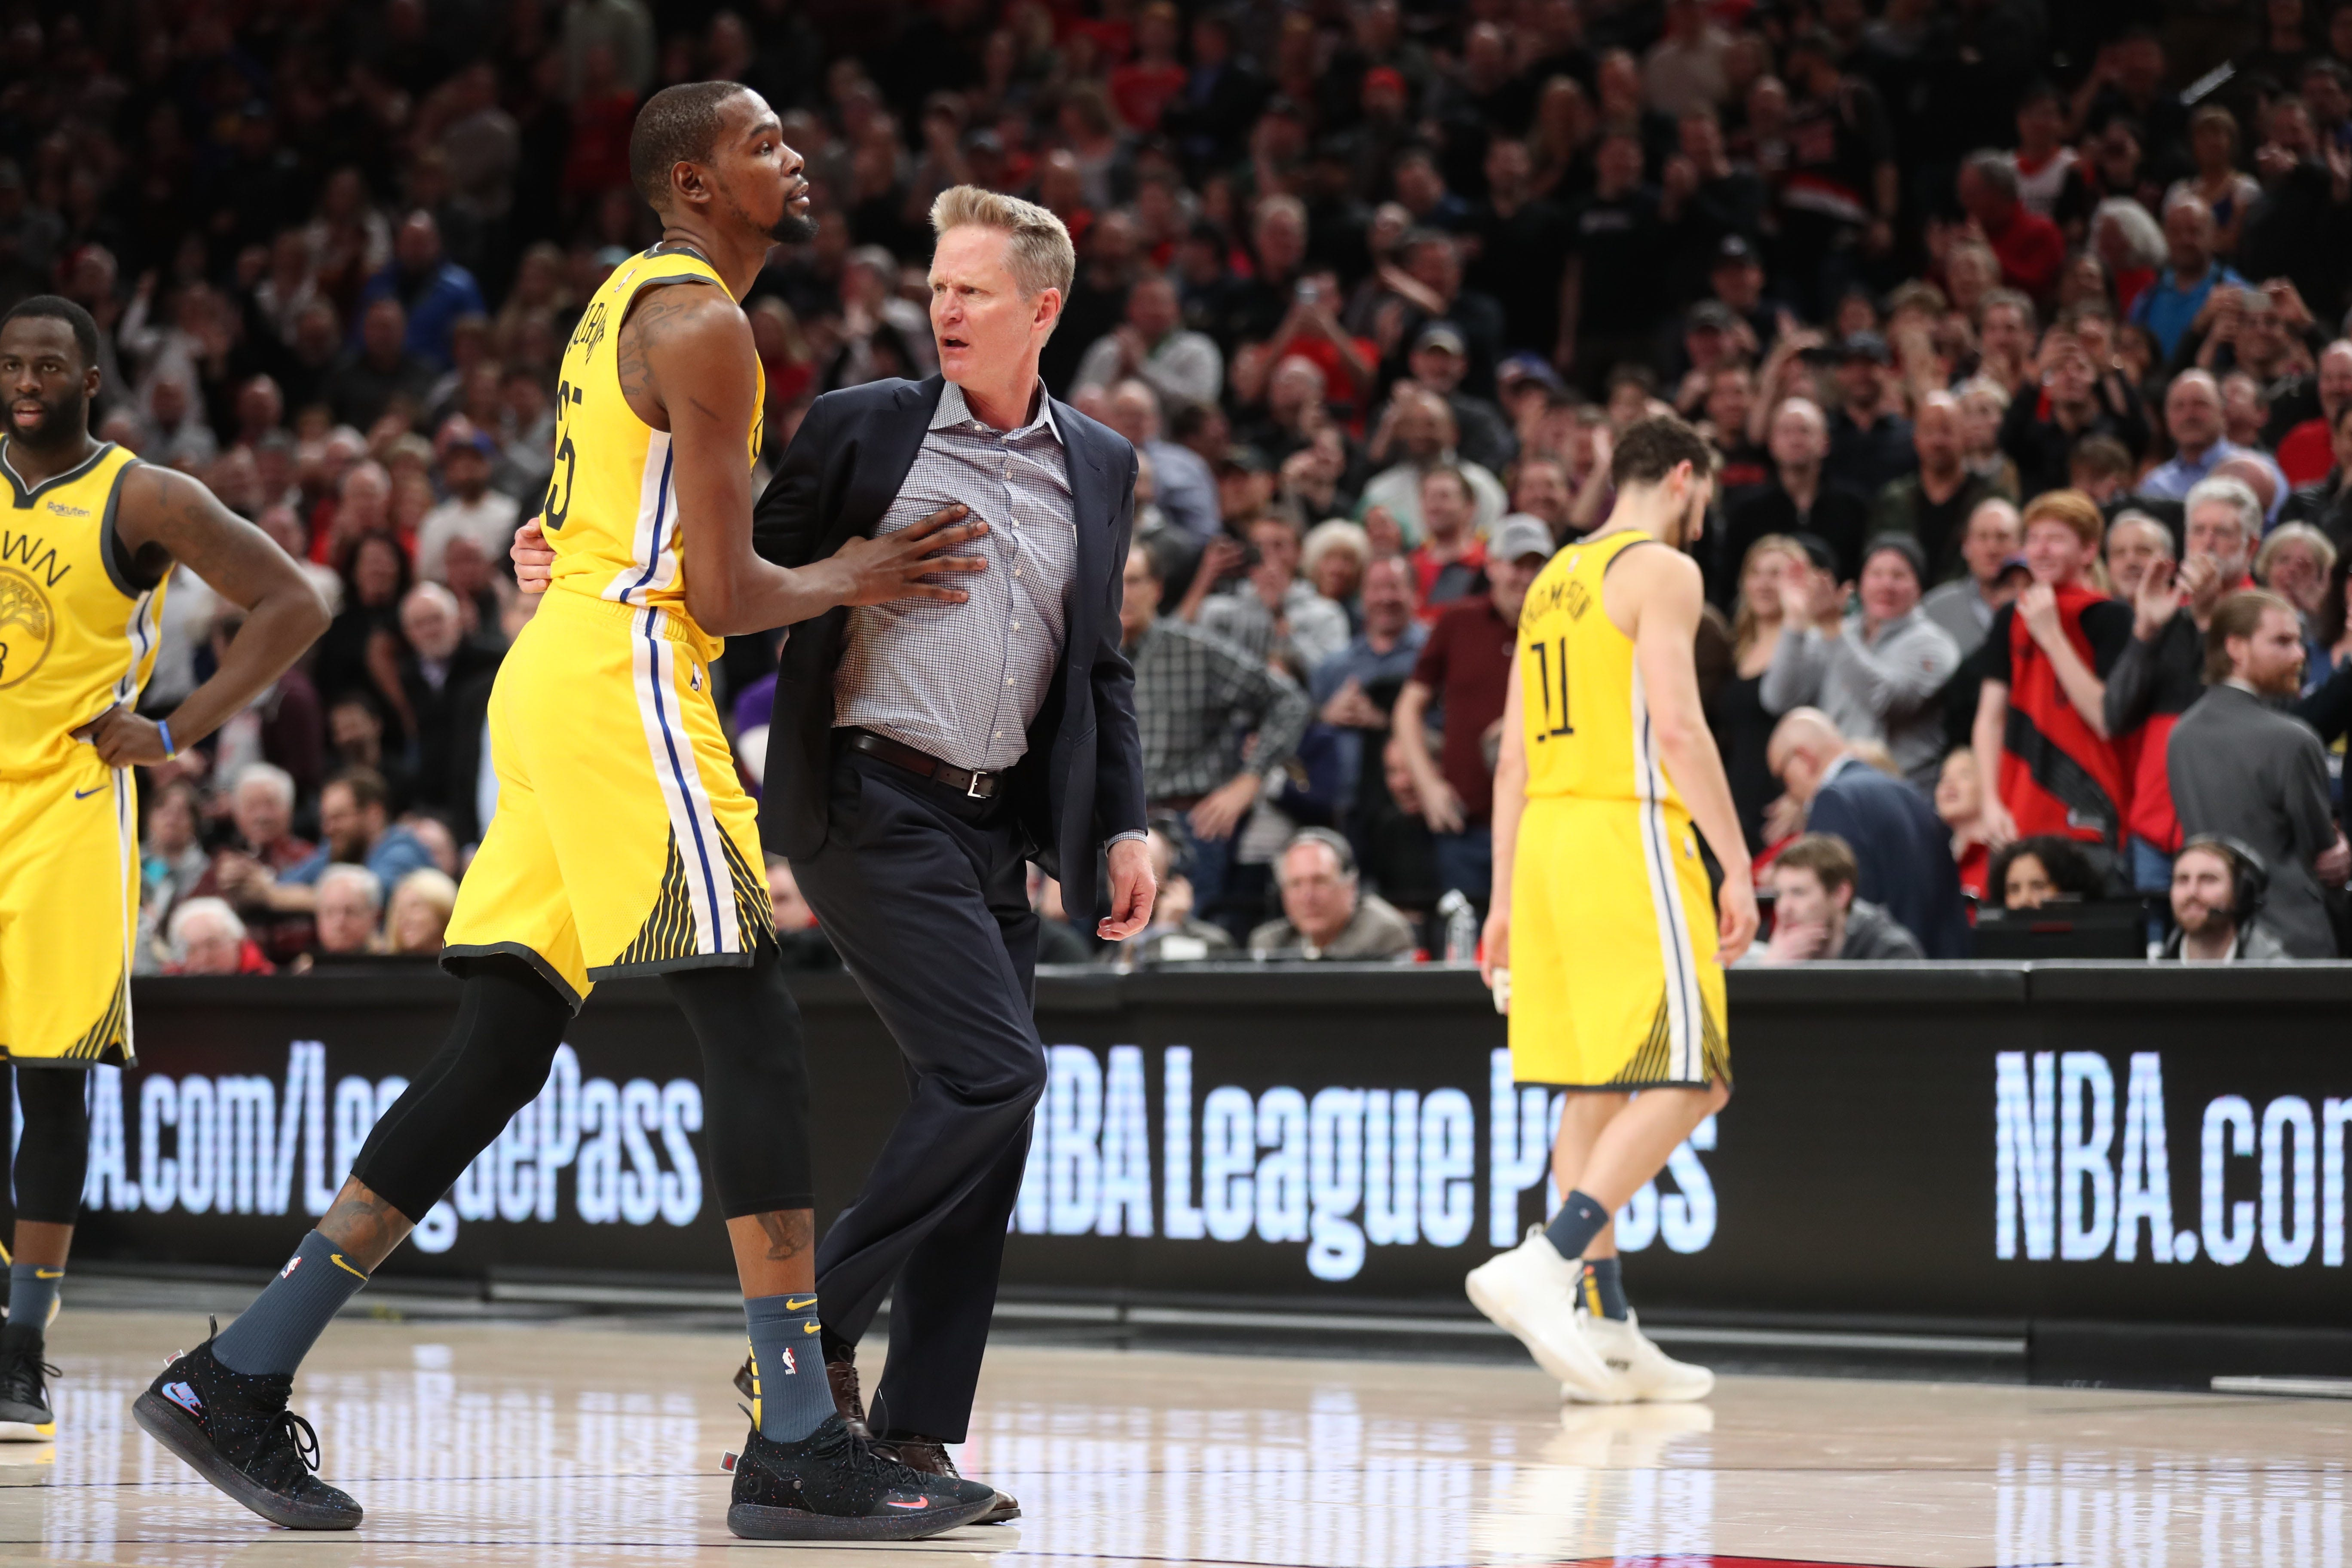 Steve Kerr ejected from Golden State Warriors game after tirade